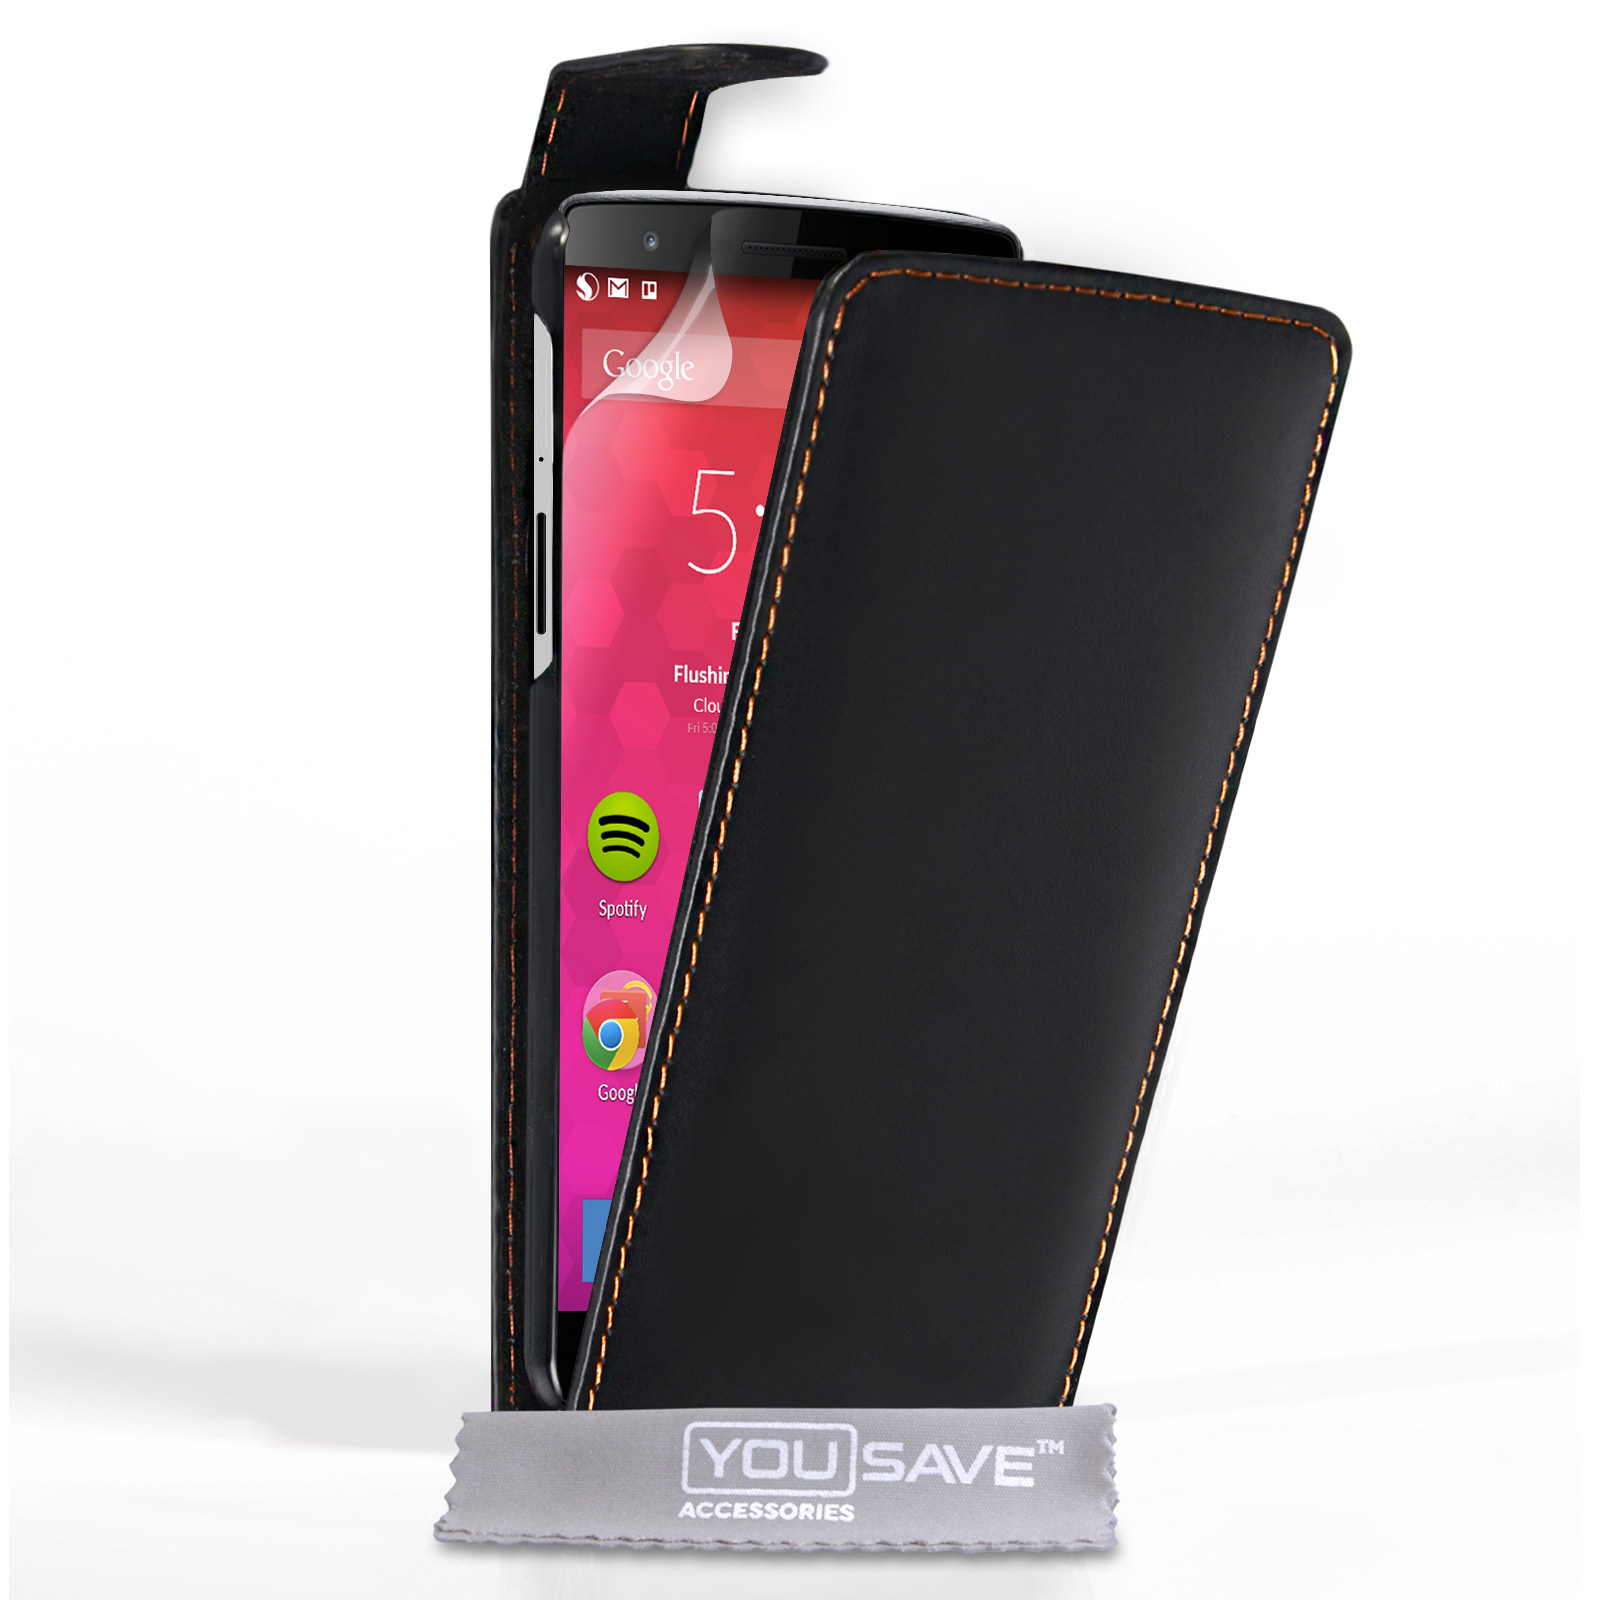 YouSave Accessories OnePlus Two Leather-Effect Flip Case - Black